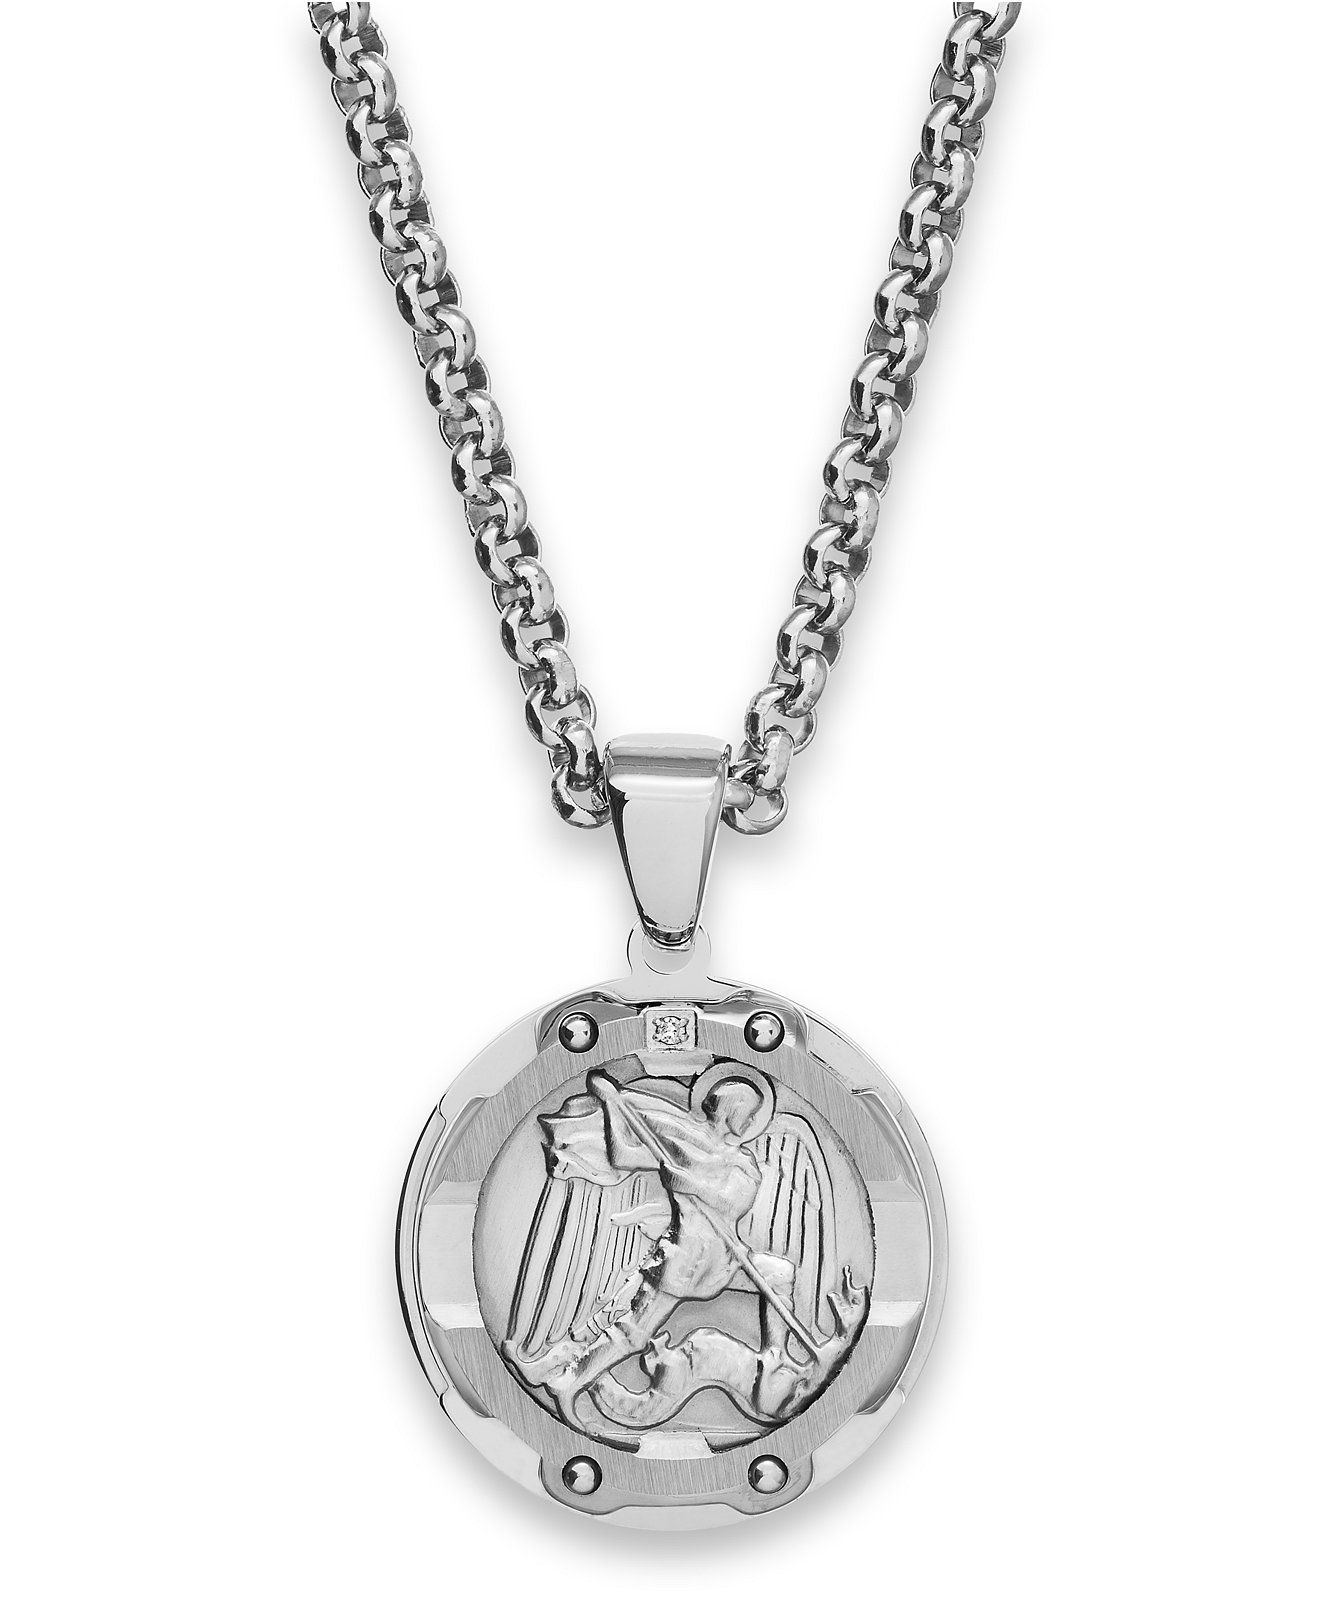 michaels archangel sterling st saint fighting loading small charms large zoom michael style a necklace oxidized in pendant antique charm silver demon